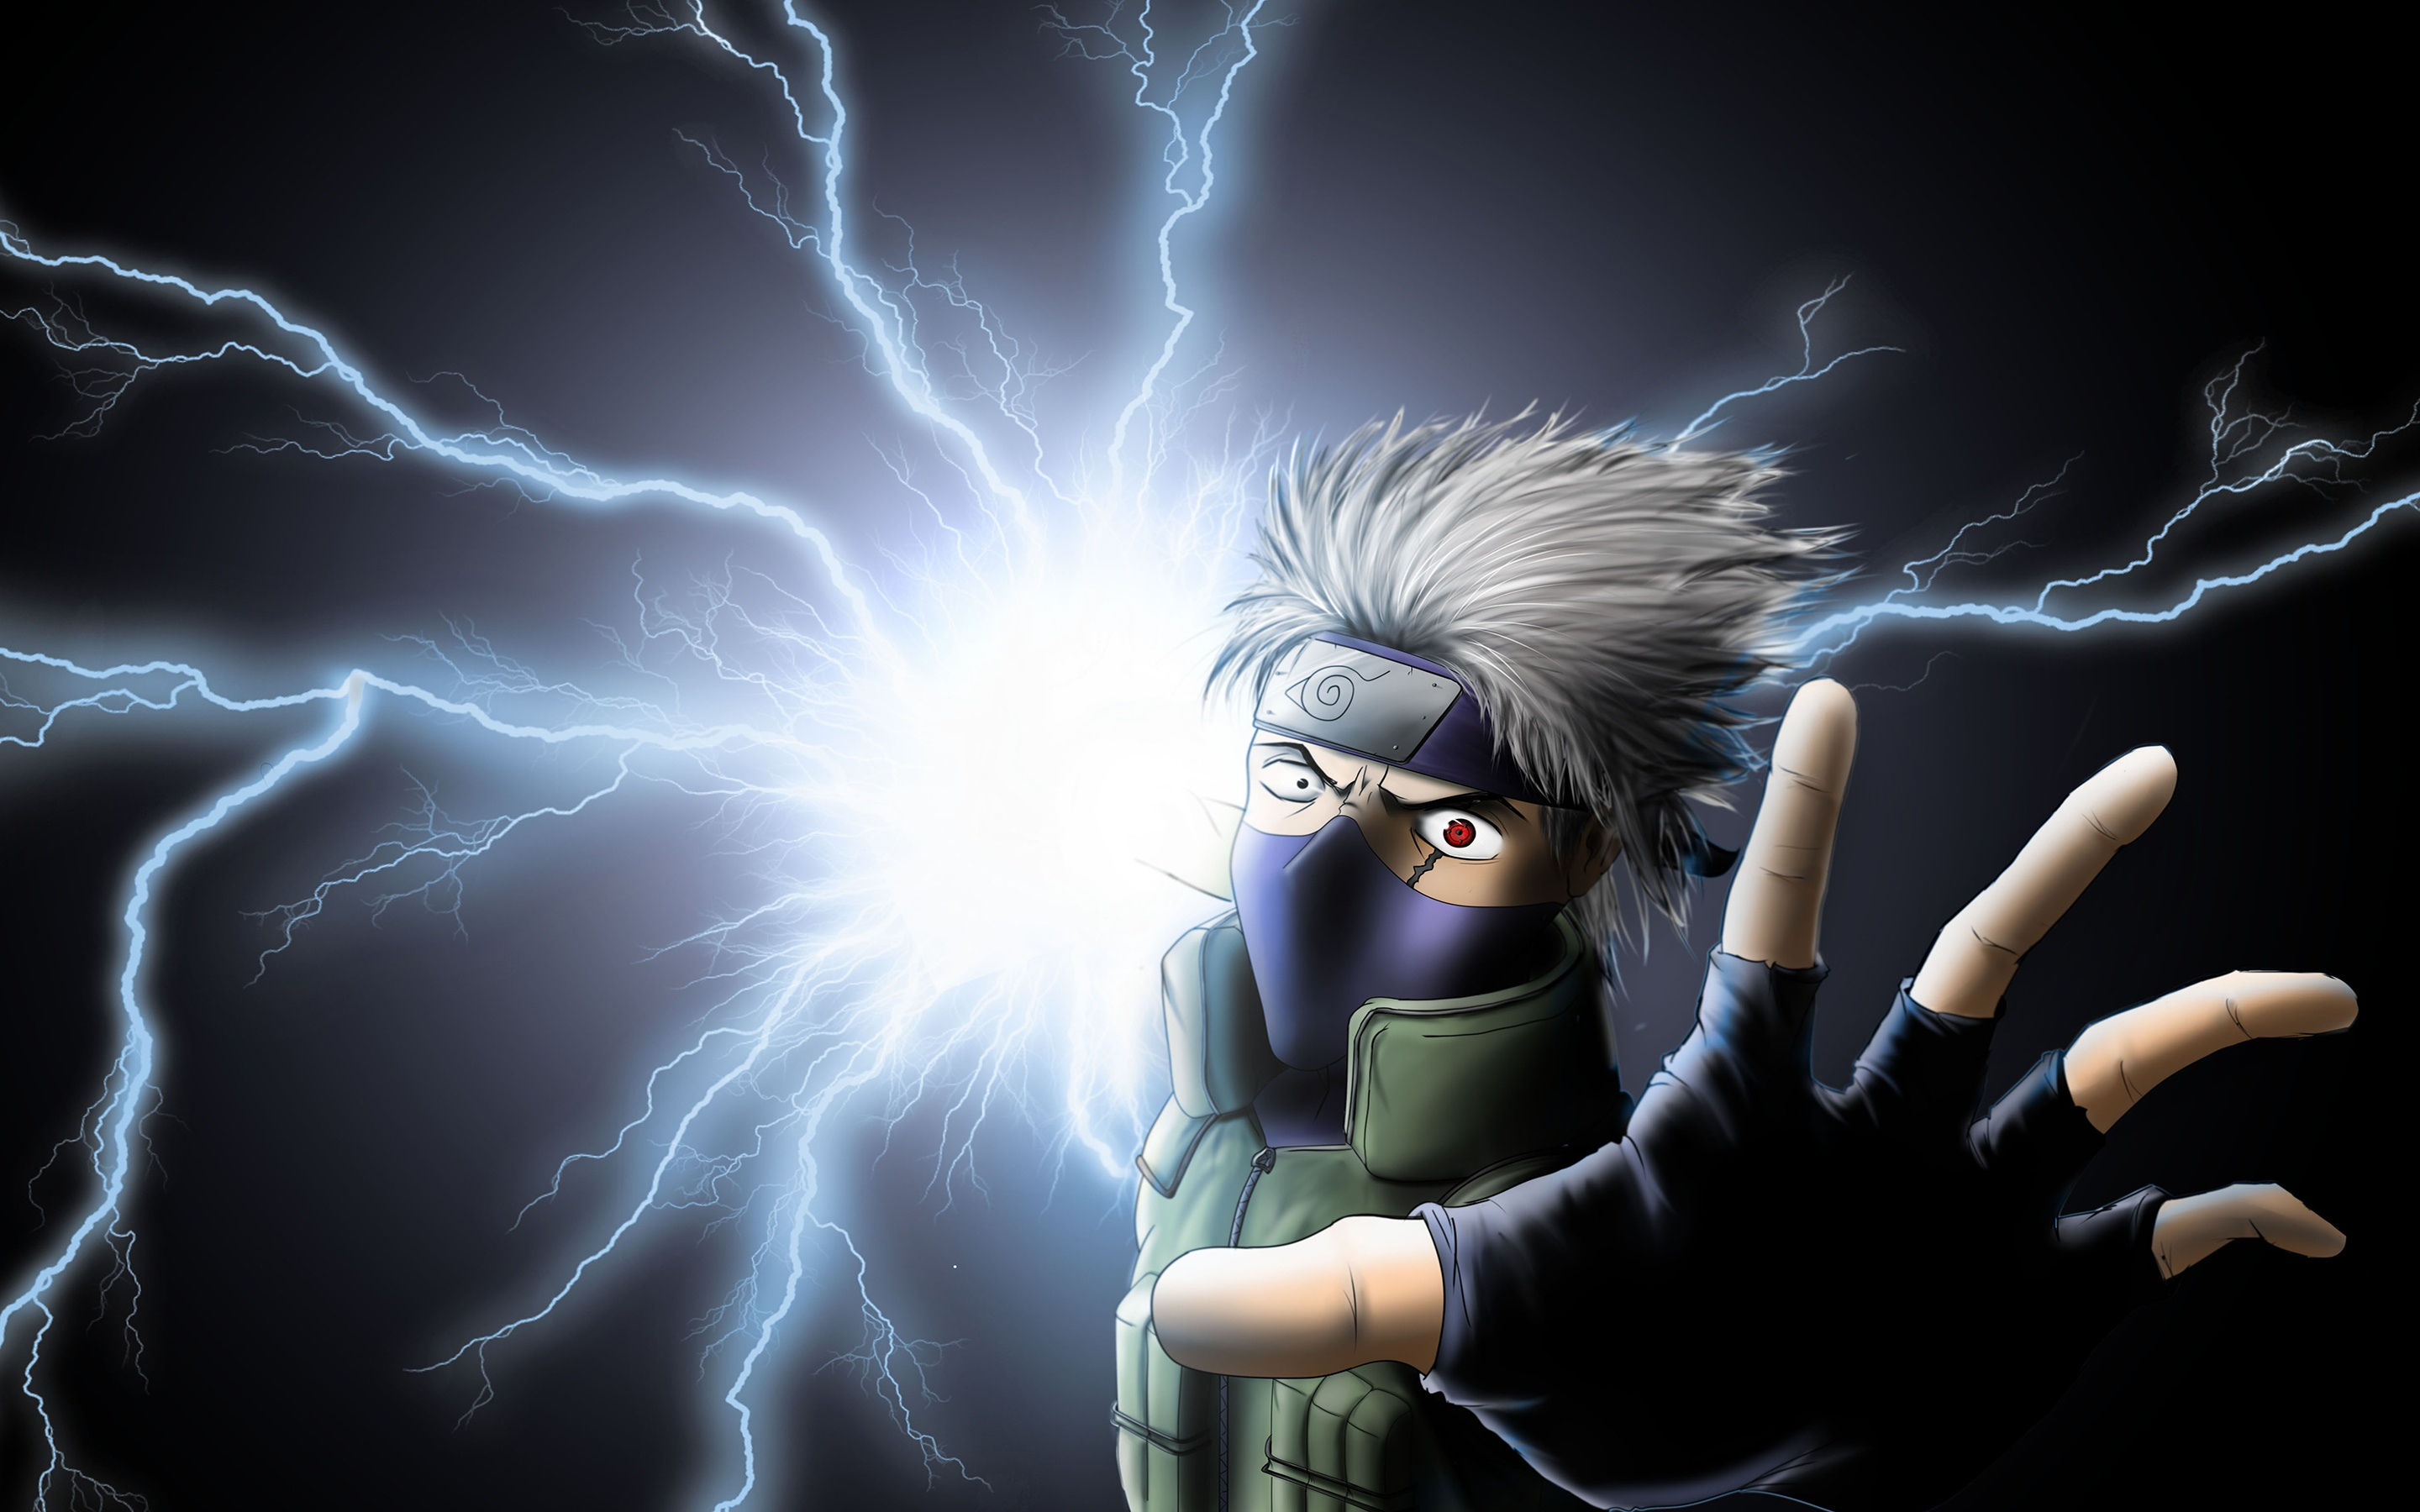 Kakashi Wallpaper Image Desktop 5638 Wallpaper Cool Walldiskpaper 2880x1800